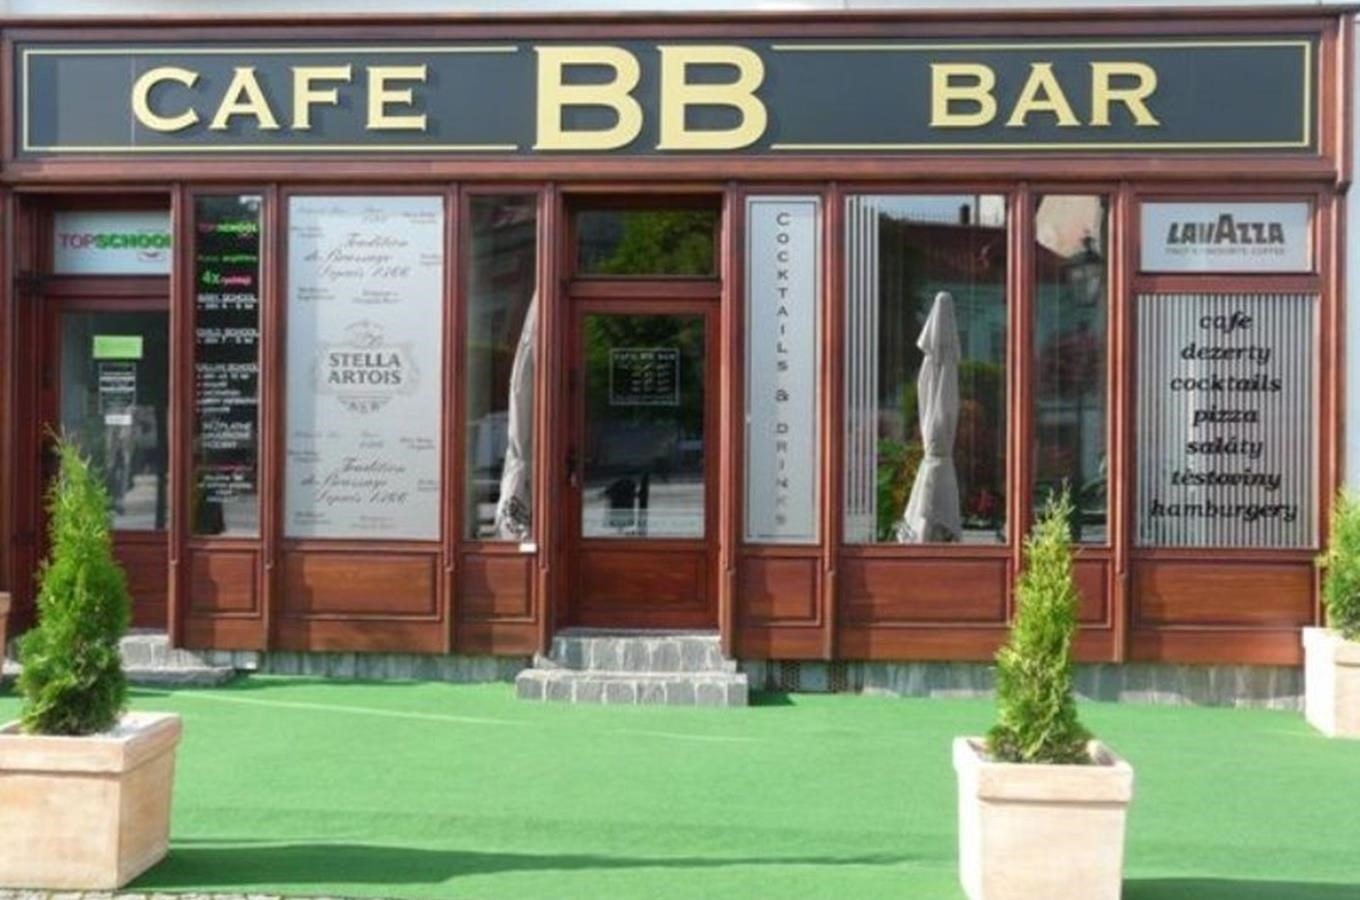 Cafe BB Bar Karviná